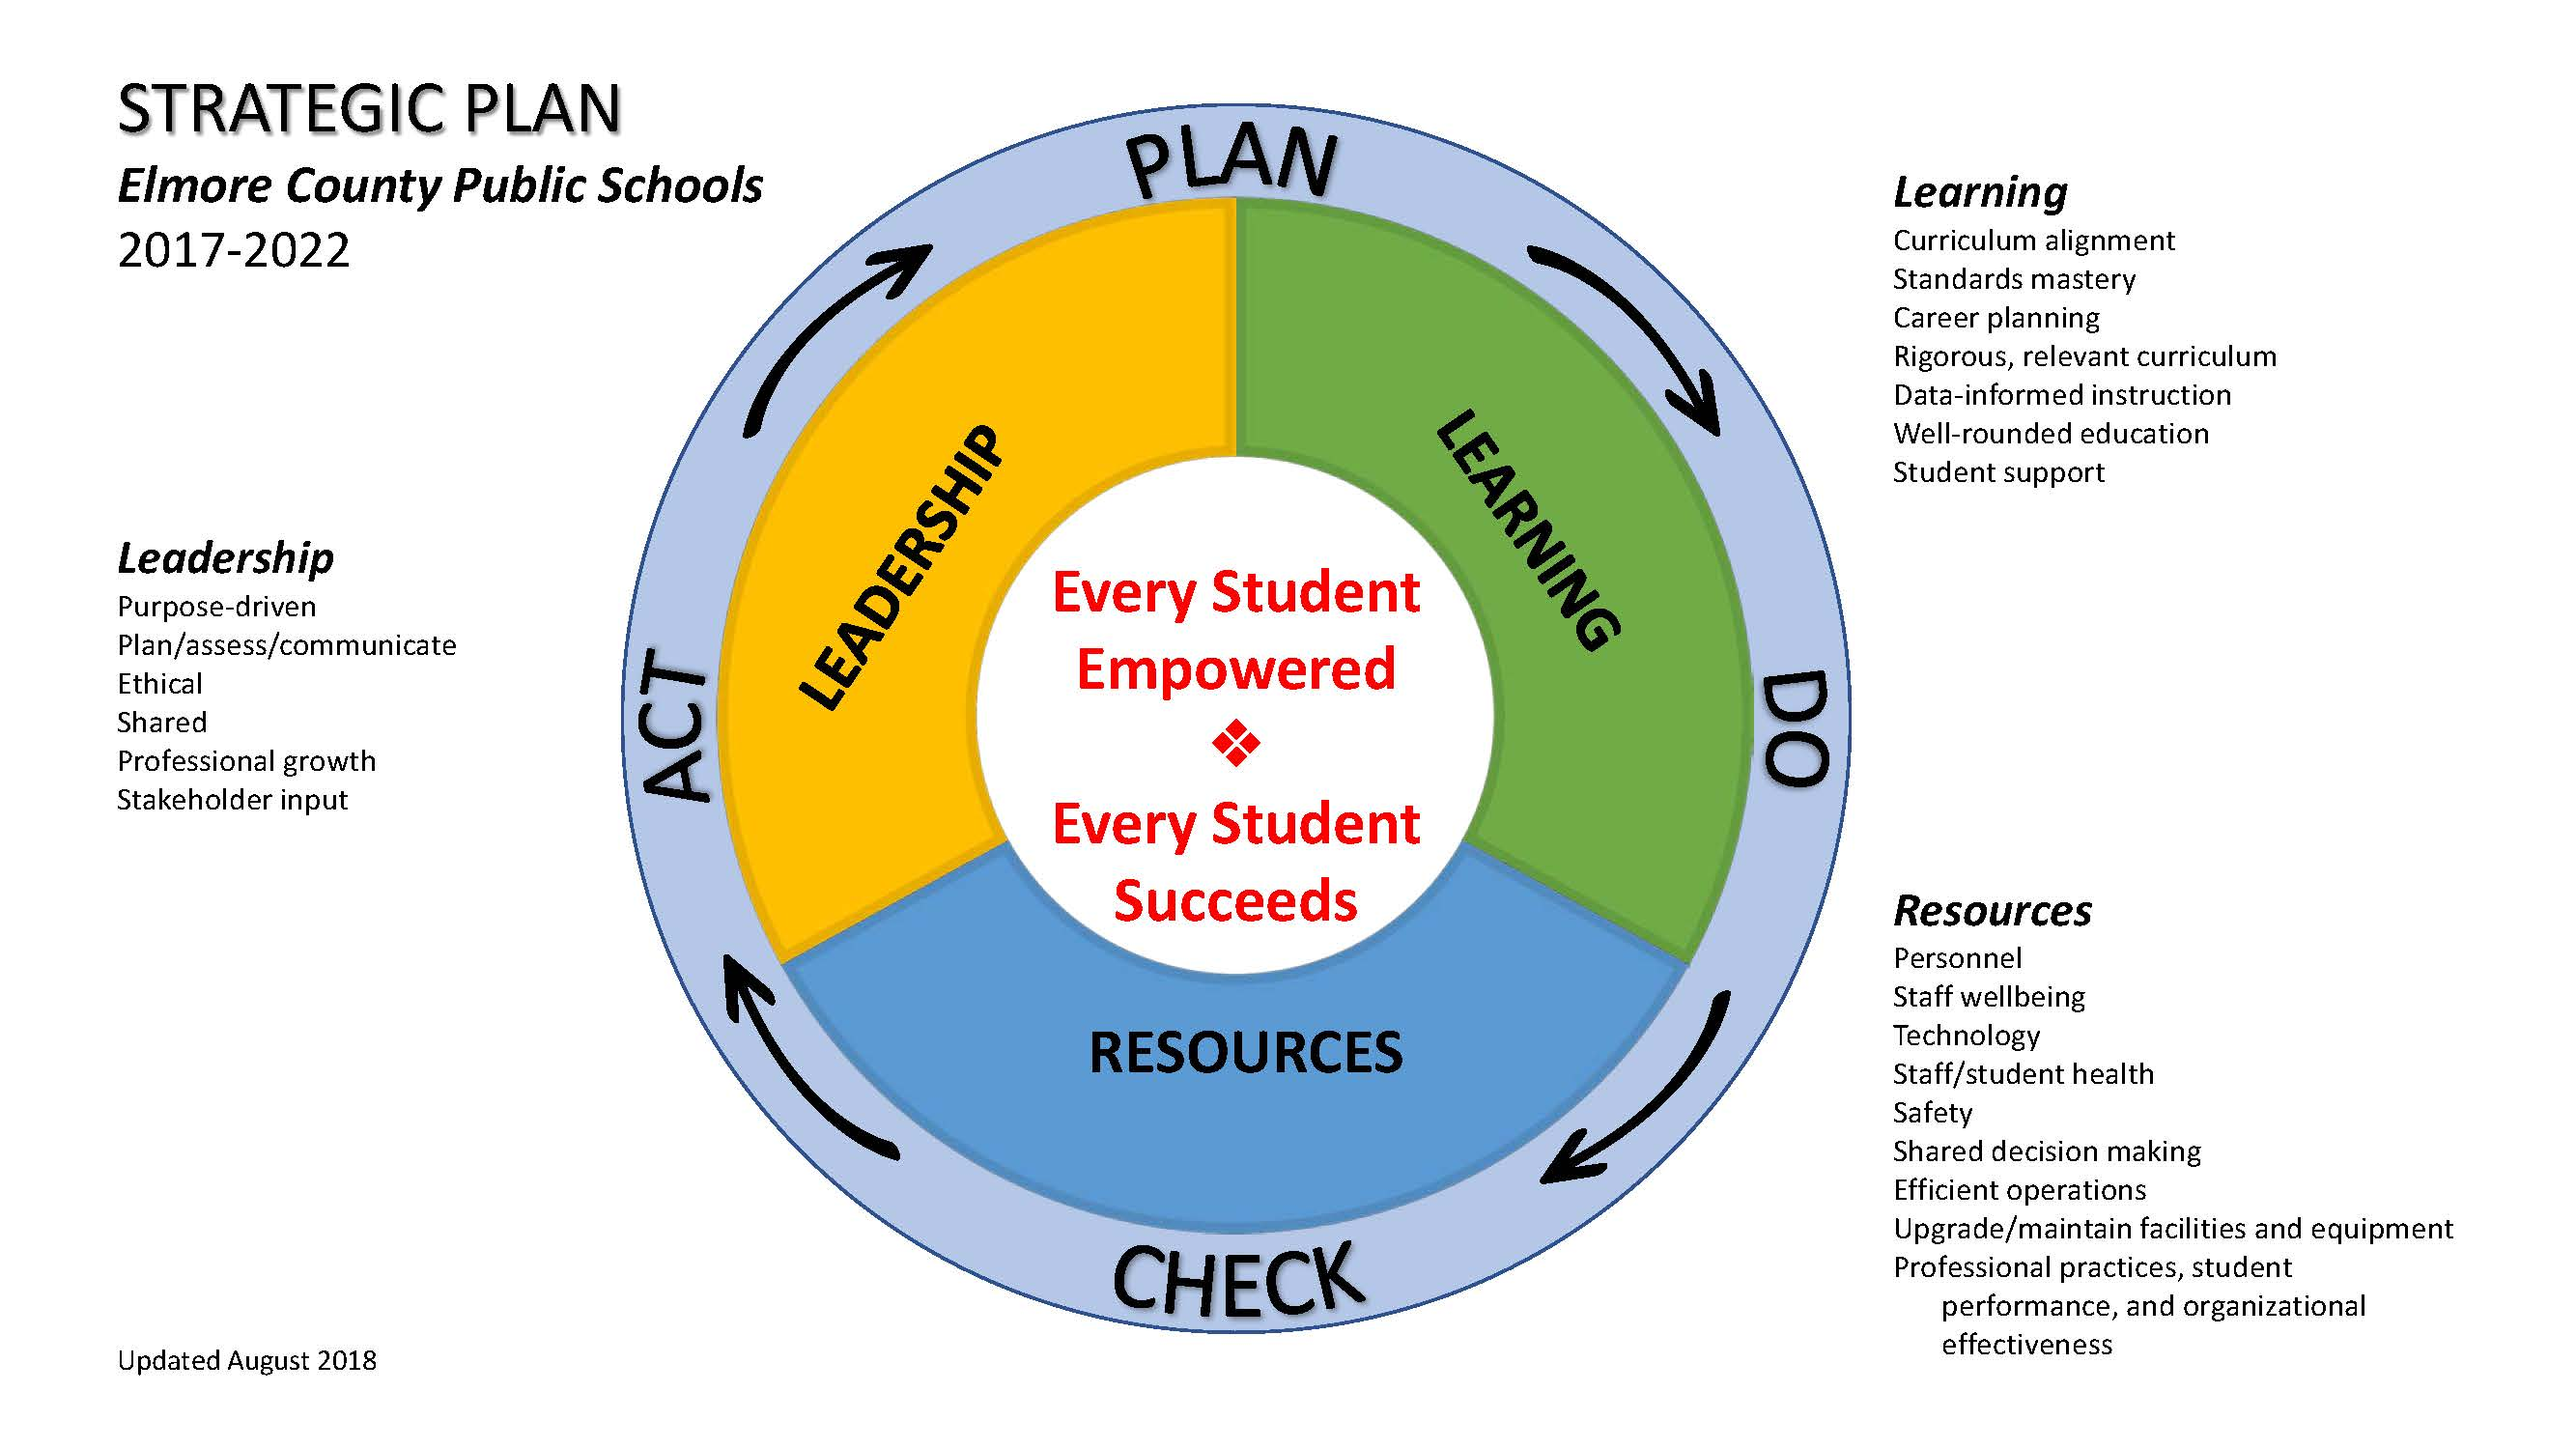 Elmore County Montgomery Community College Academic Calendar Diagram You Every Student Succeeds